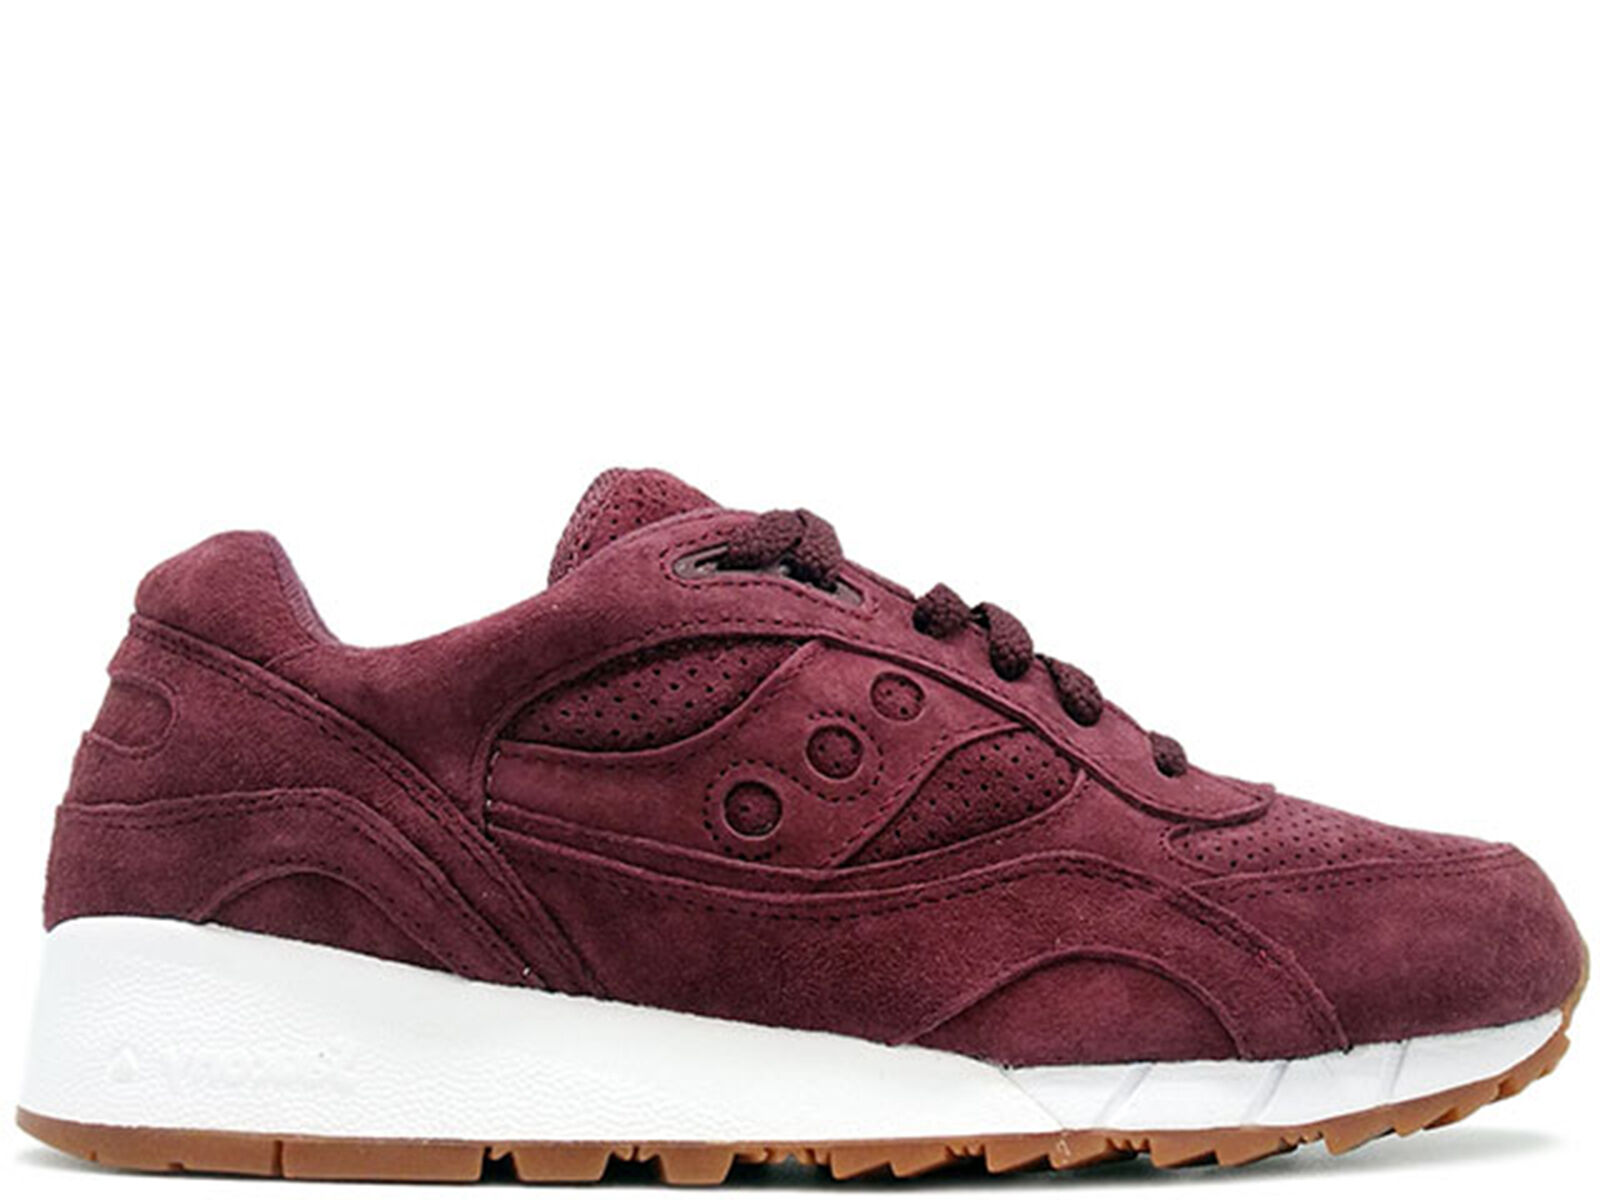 Brand New Saucony Shadow 6000 Men's Athletic Fashion Sneakers [S70222-7]